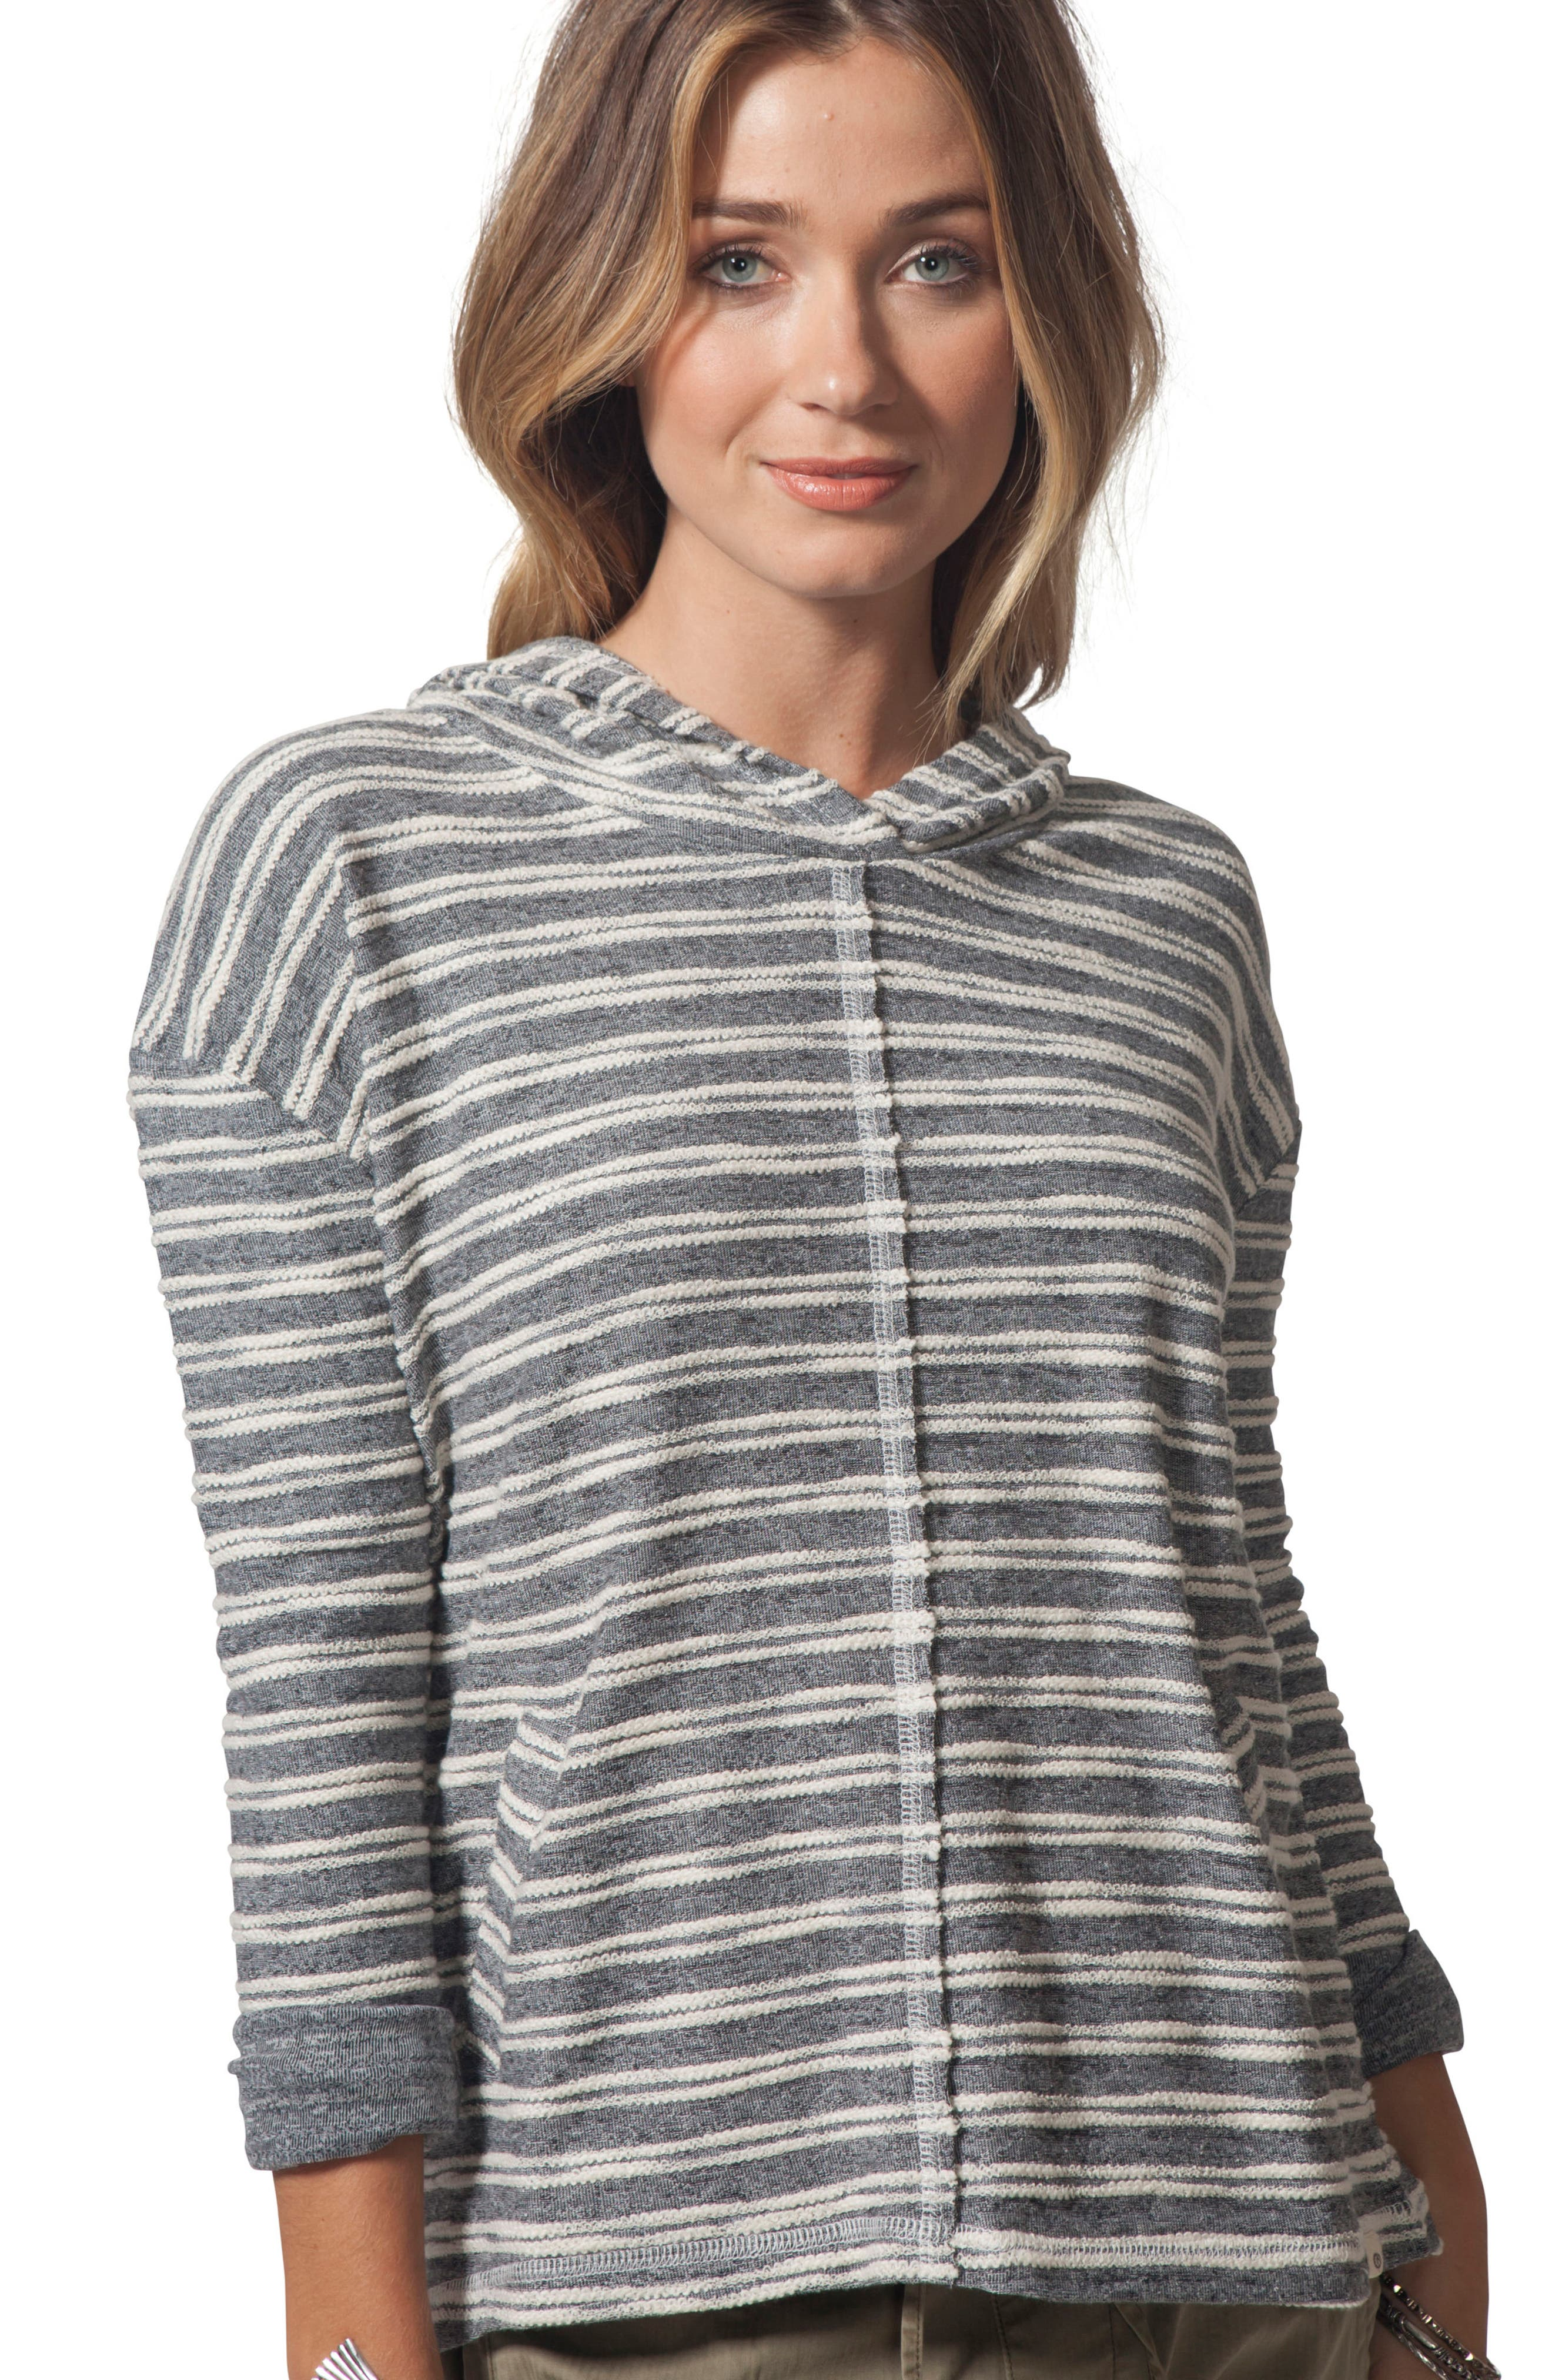 Next Move Stripe Hooded Pullover,                             Alternate thumbnail 4, color,                             001